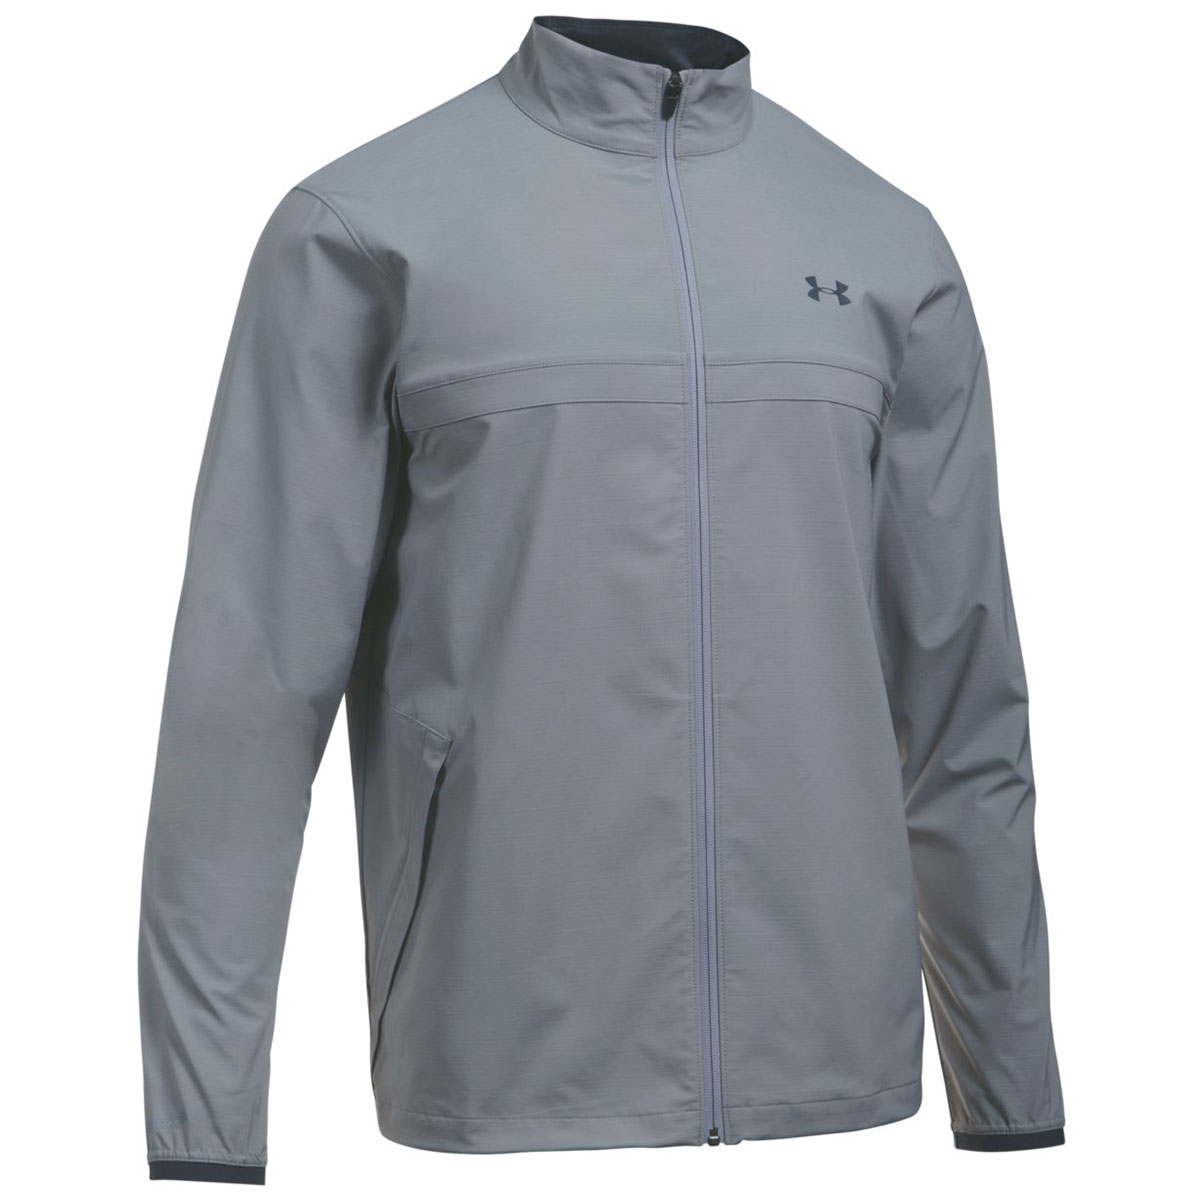 under armour jacket storm cheap   OFF76% The Largest Catalog Discounts 9f2a7feba25ef